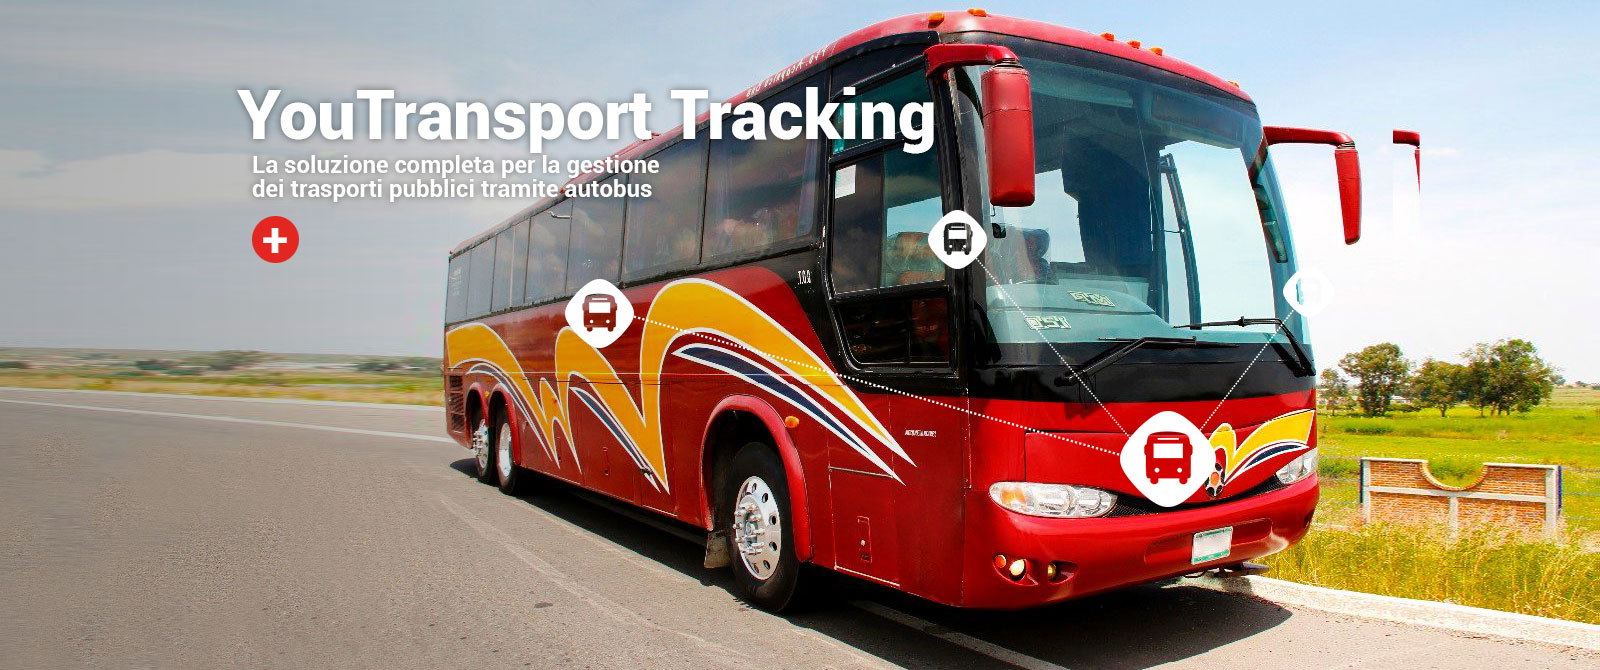 testalino_youtransport_tracking